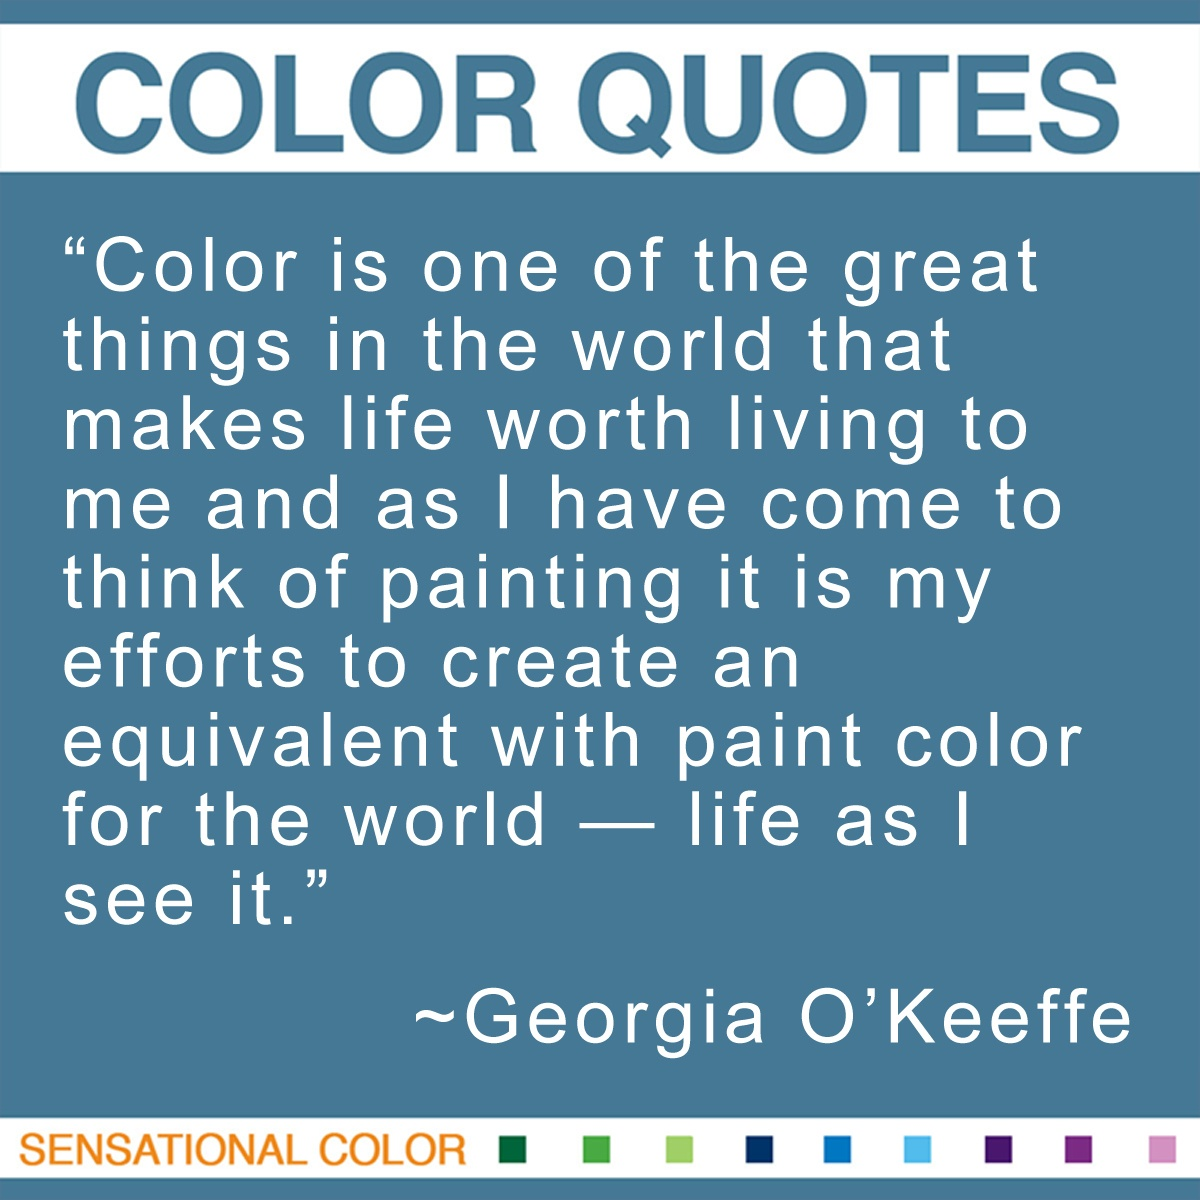 """Color is one of the great things in the world that makes life worth living to me and as I have come to think of painting it is my efforts to create an equivalent with paint color for the world — life as I see it."" - Georgia O'Keeffe"